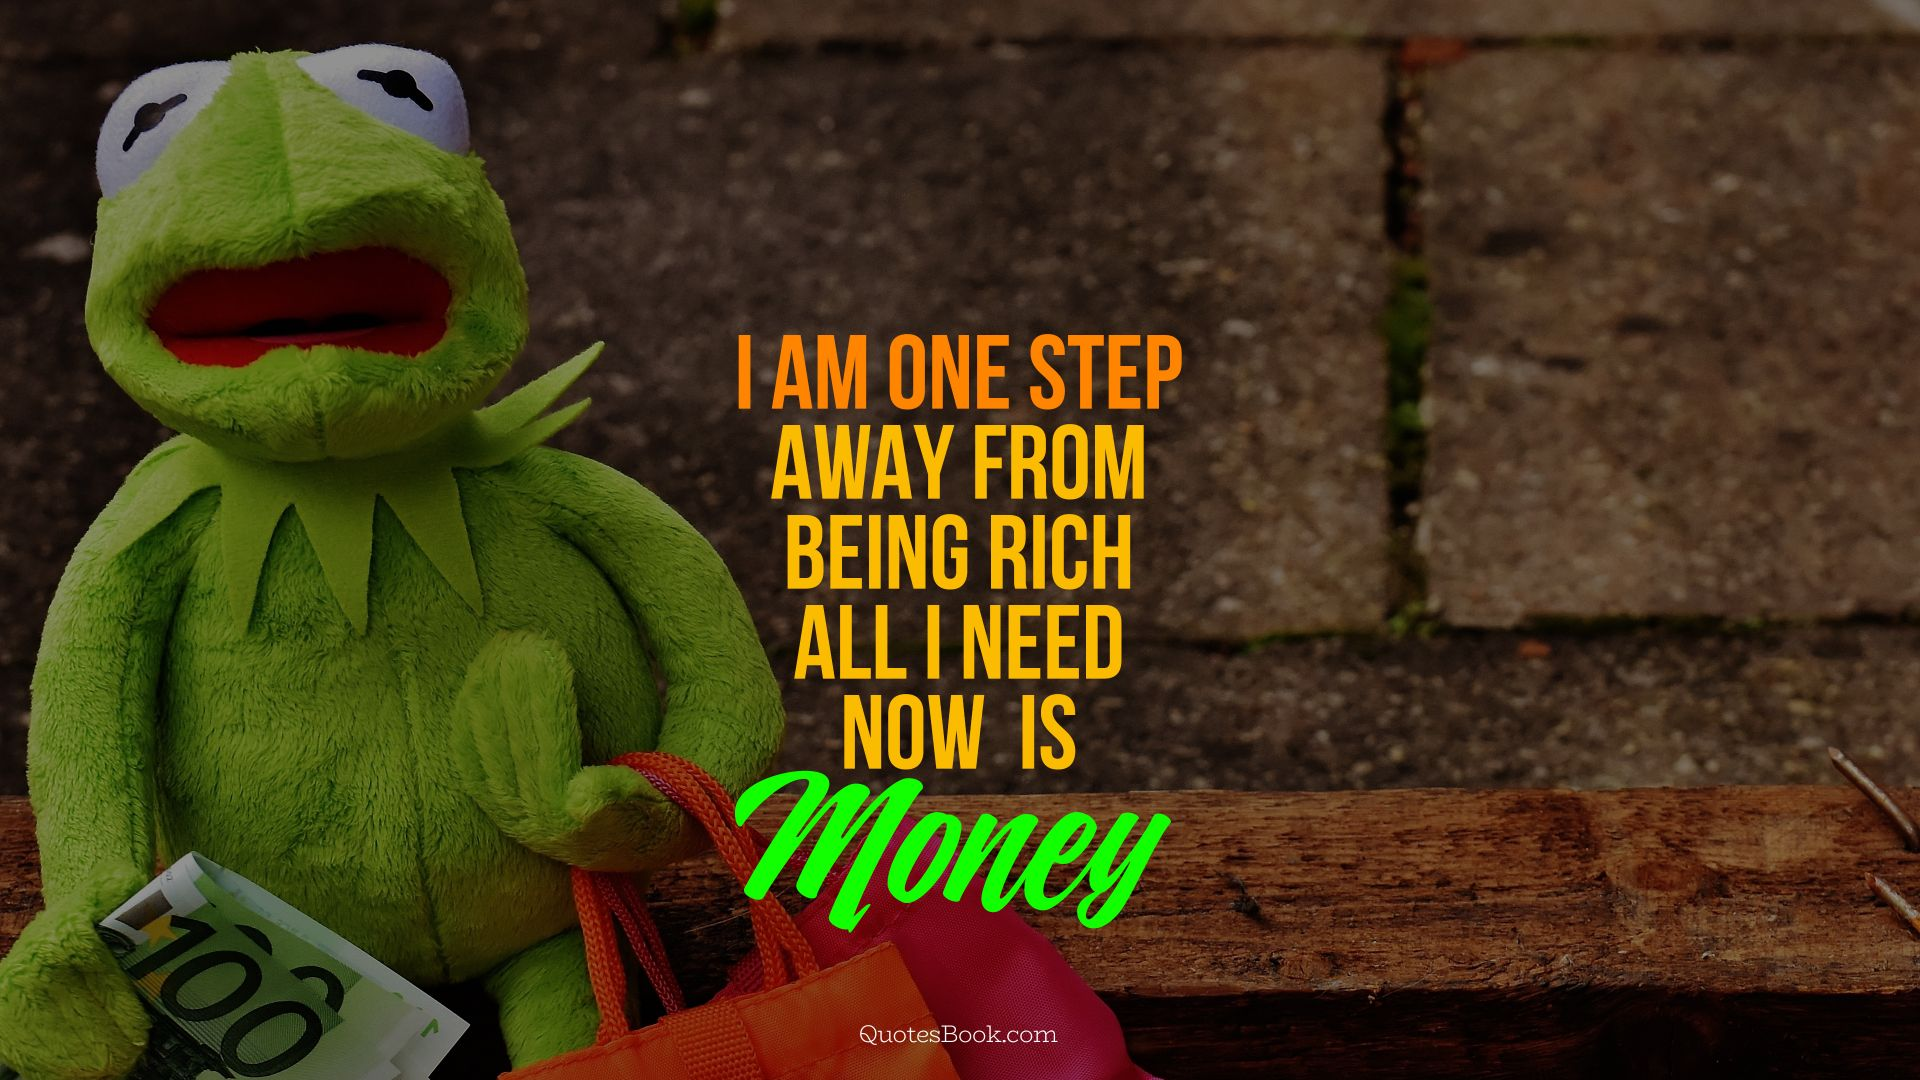 I am one step away from being rich, 